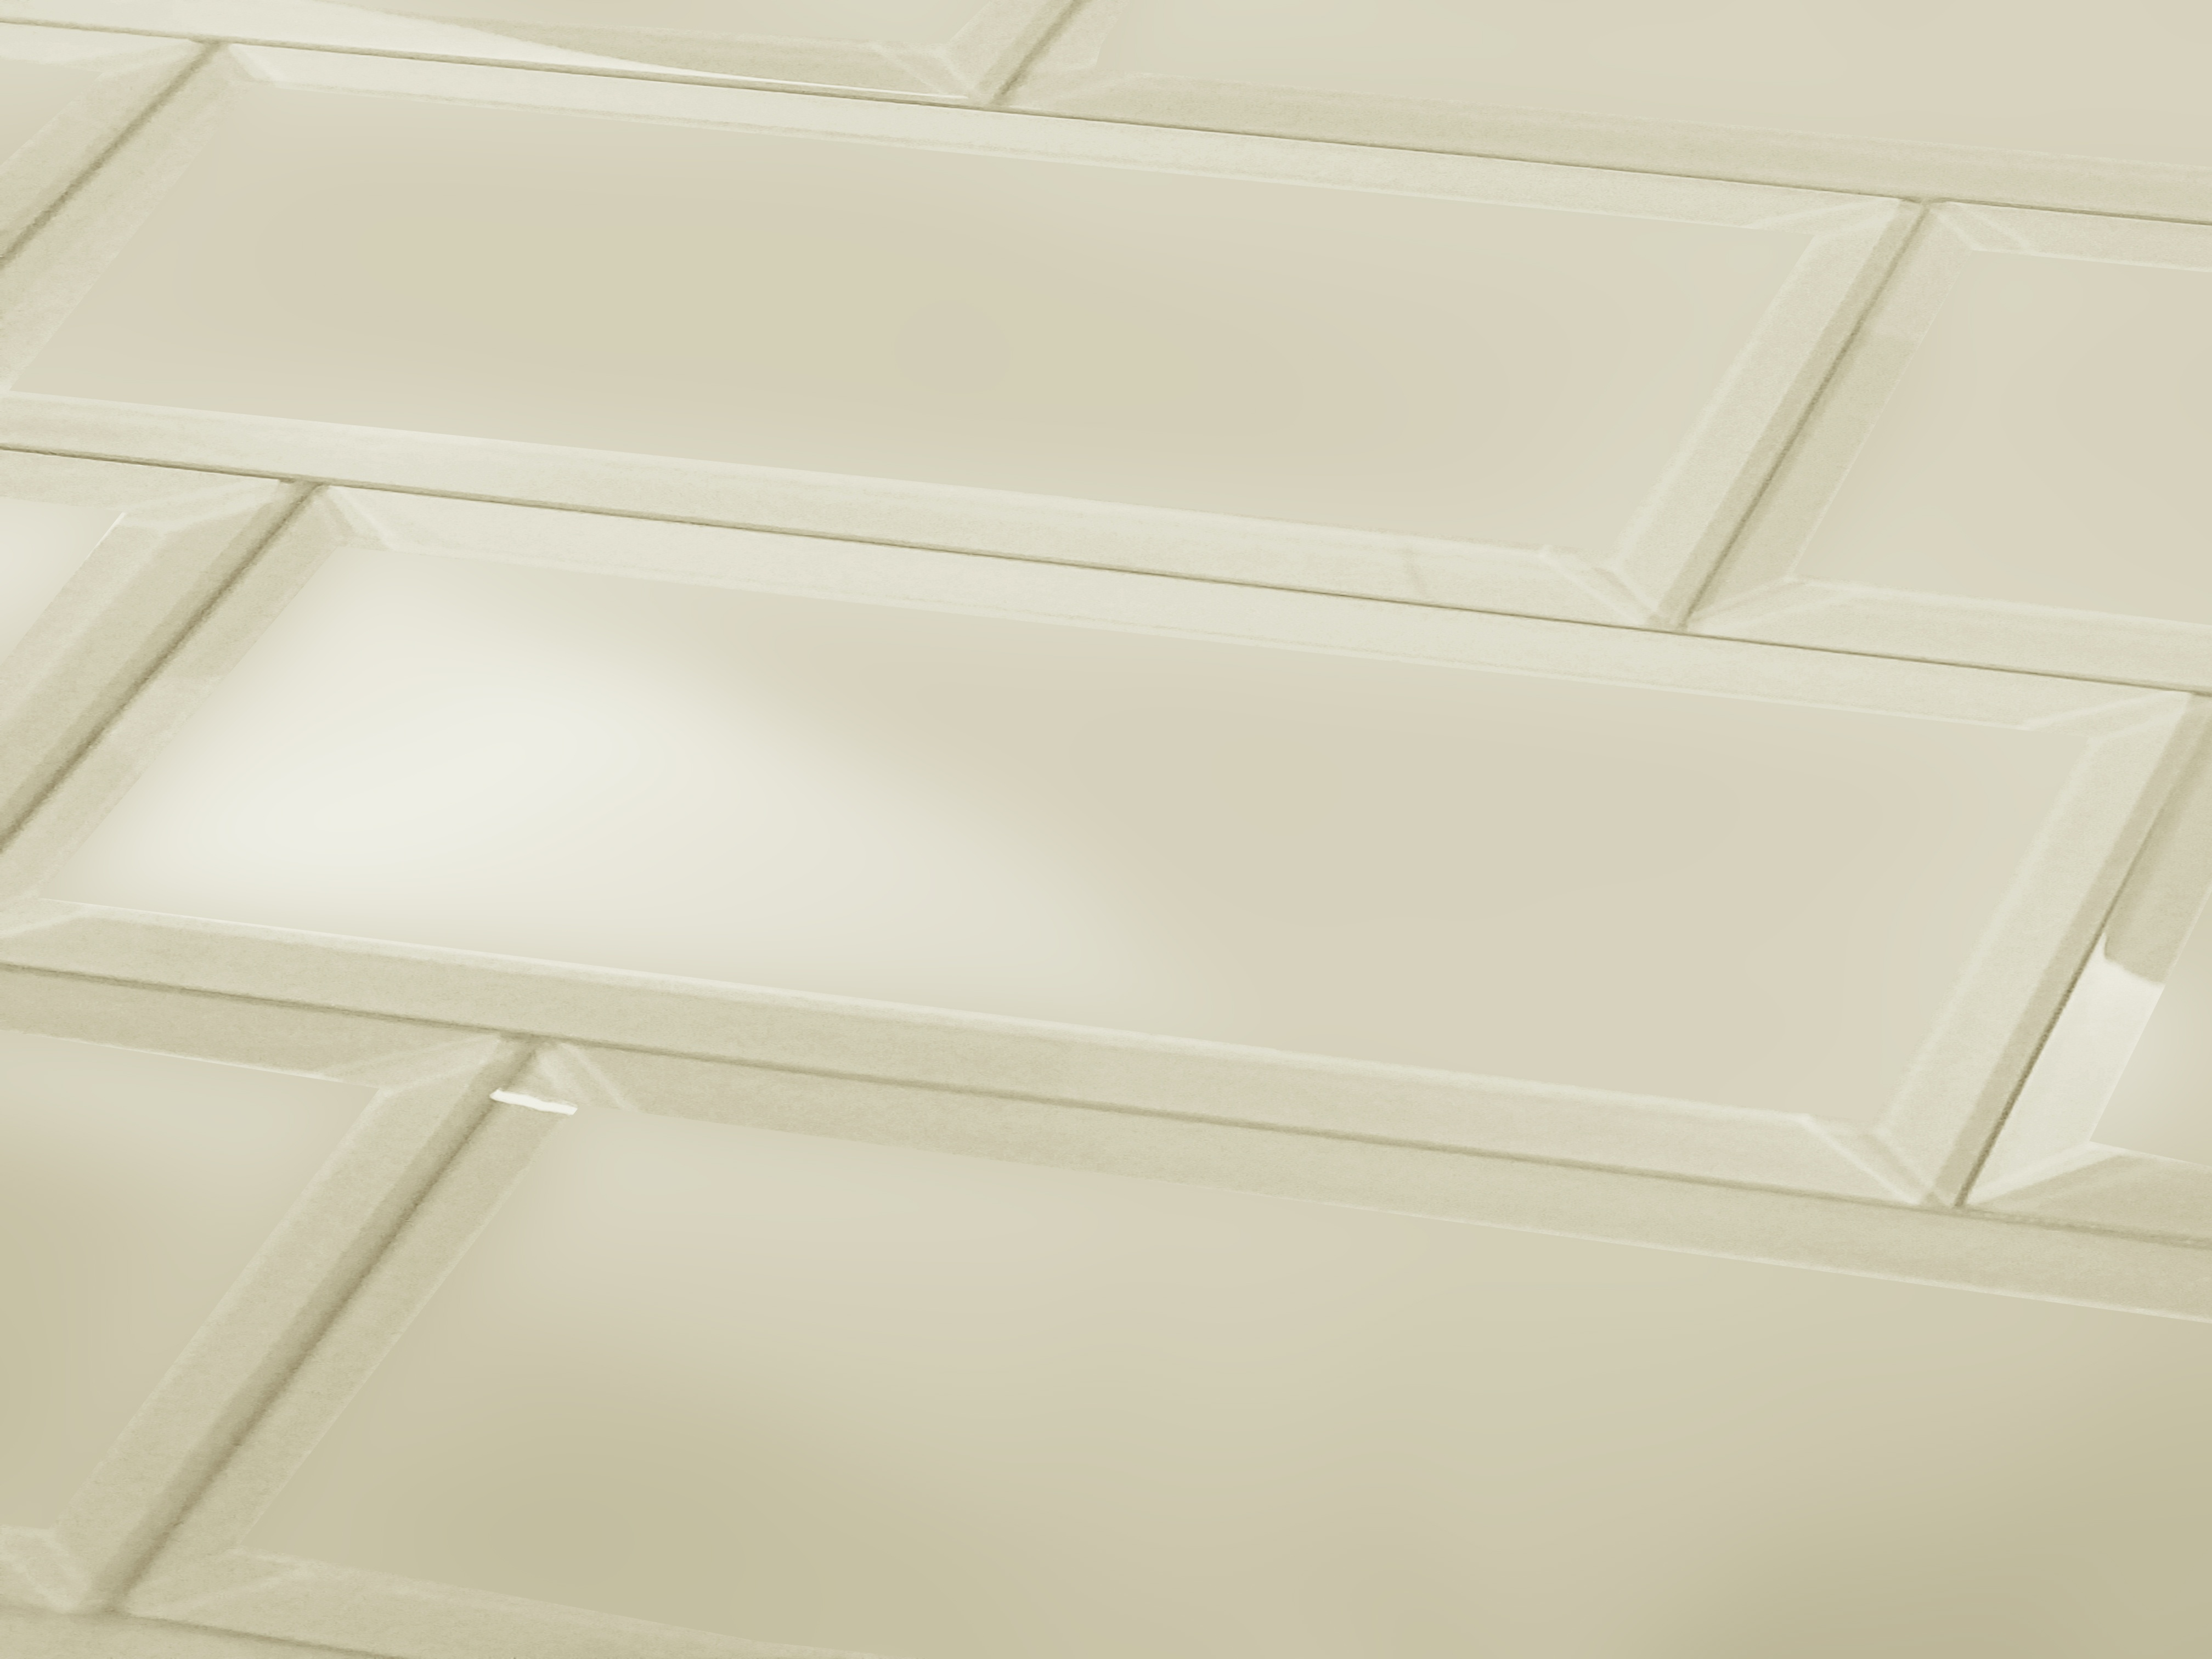 Frosted Elegance 3 in x 12 in Glass Subway Tile in CECILLIA Matte